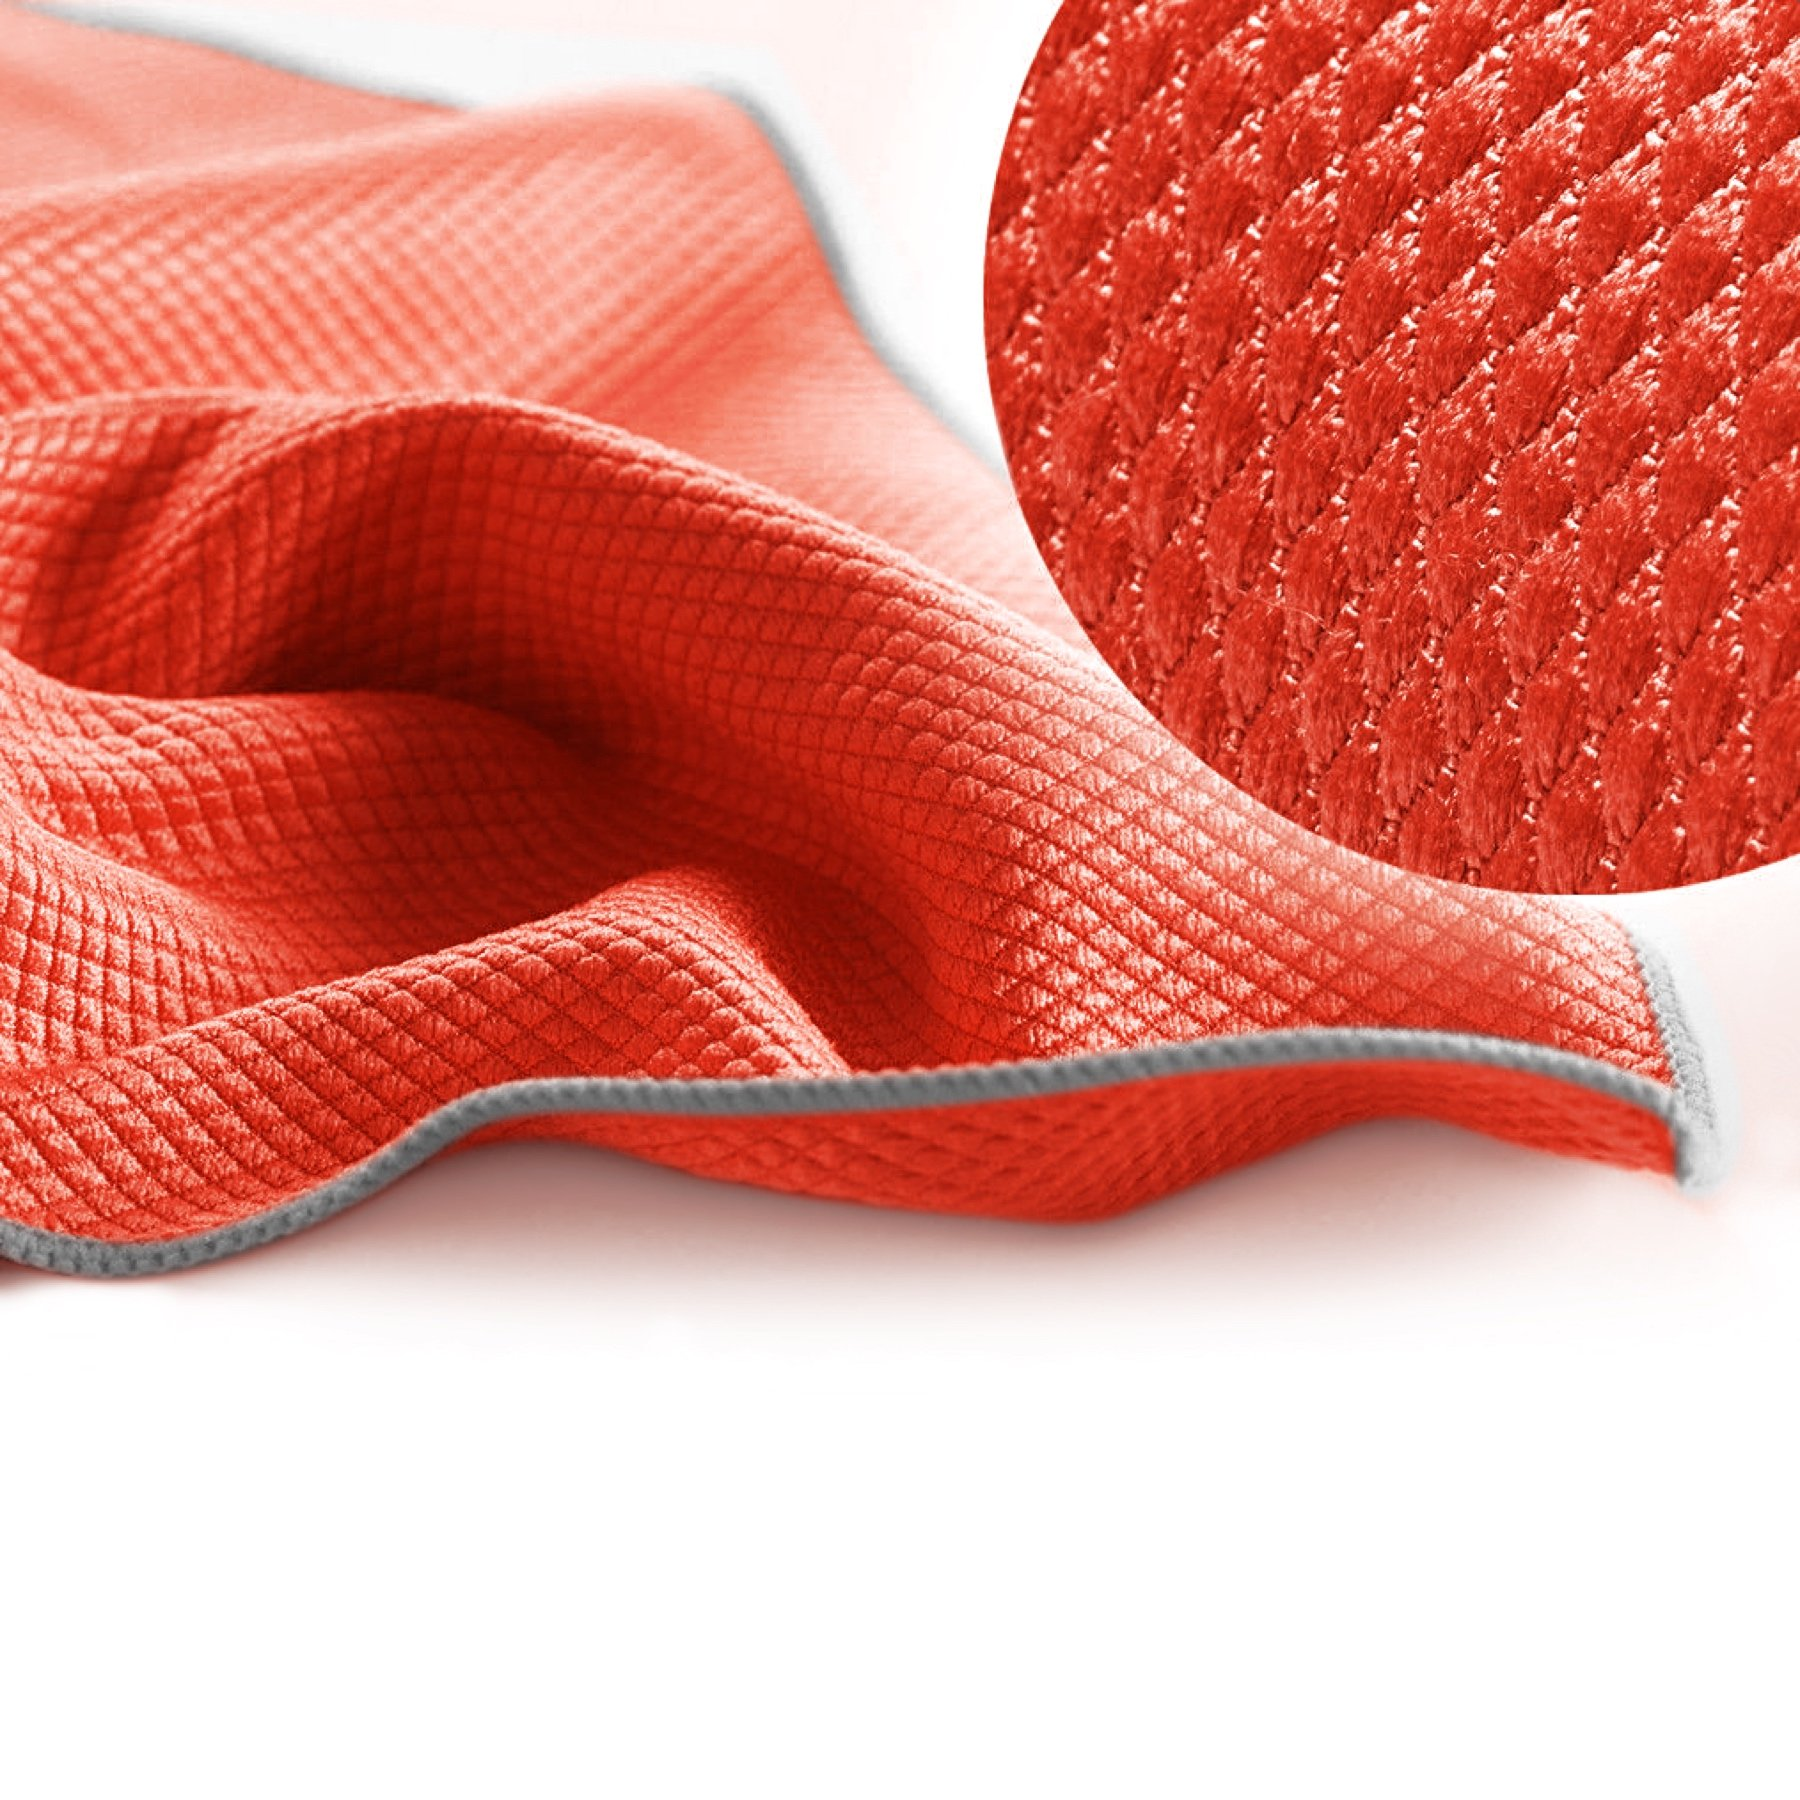 microfibre-fishscale-red_2000x.jpg